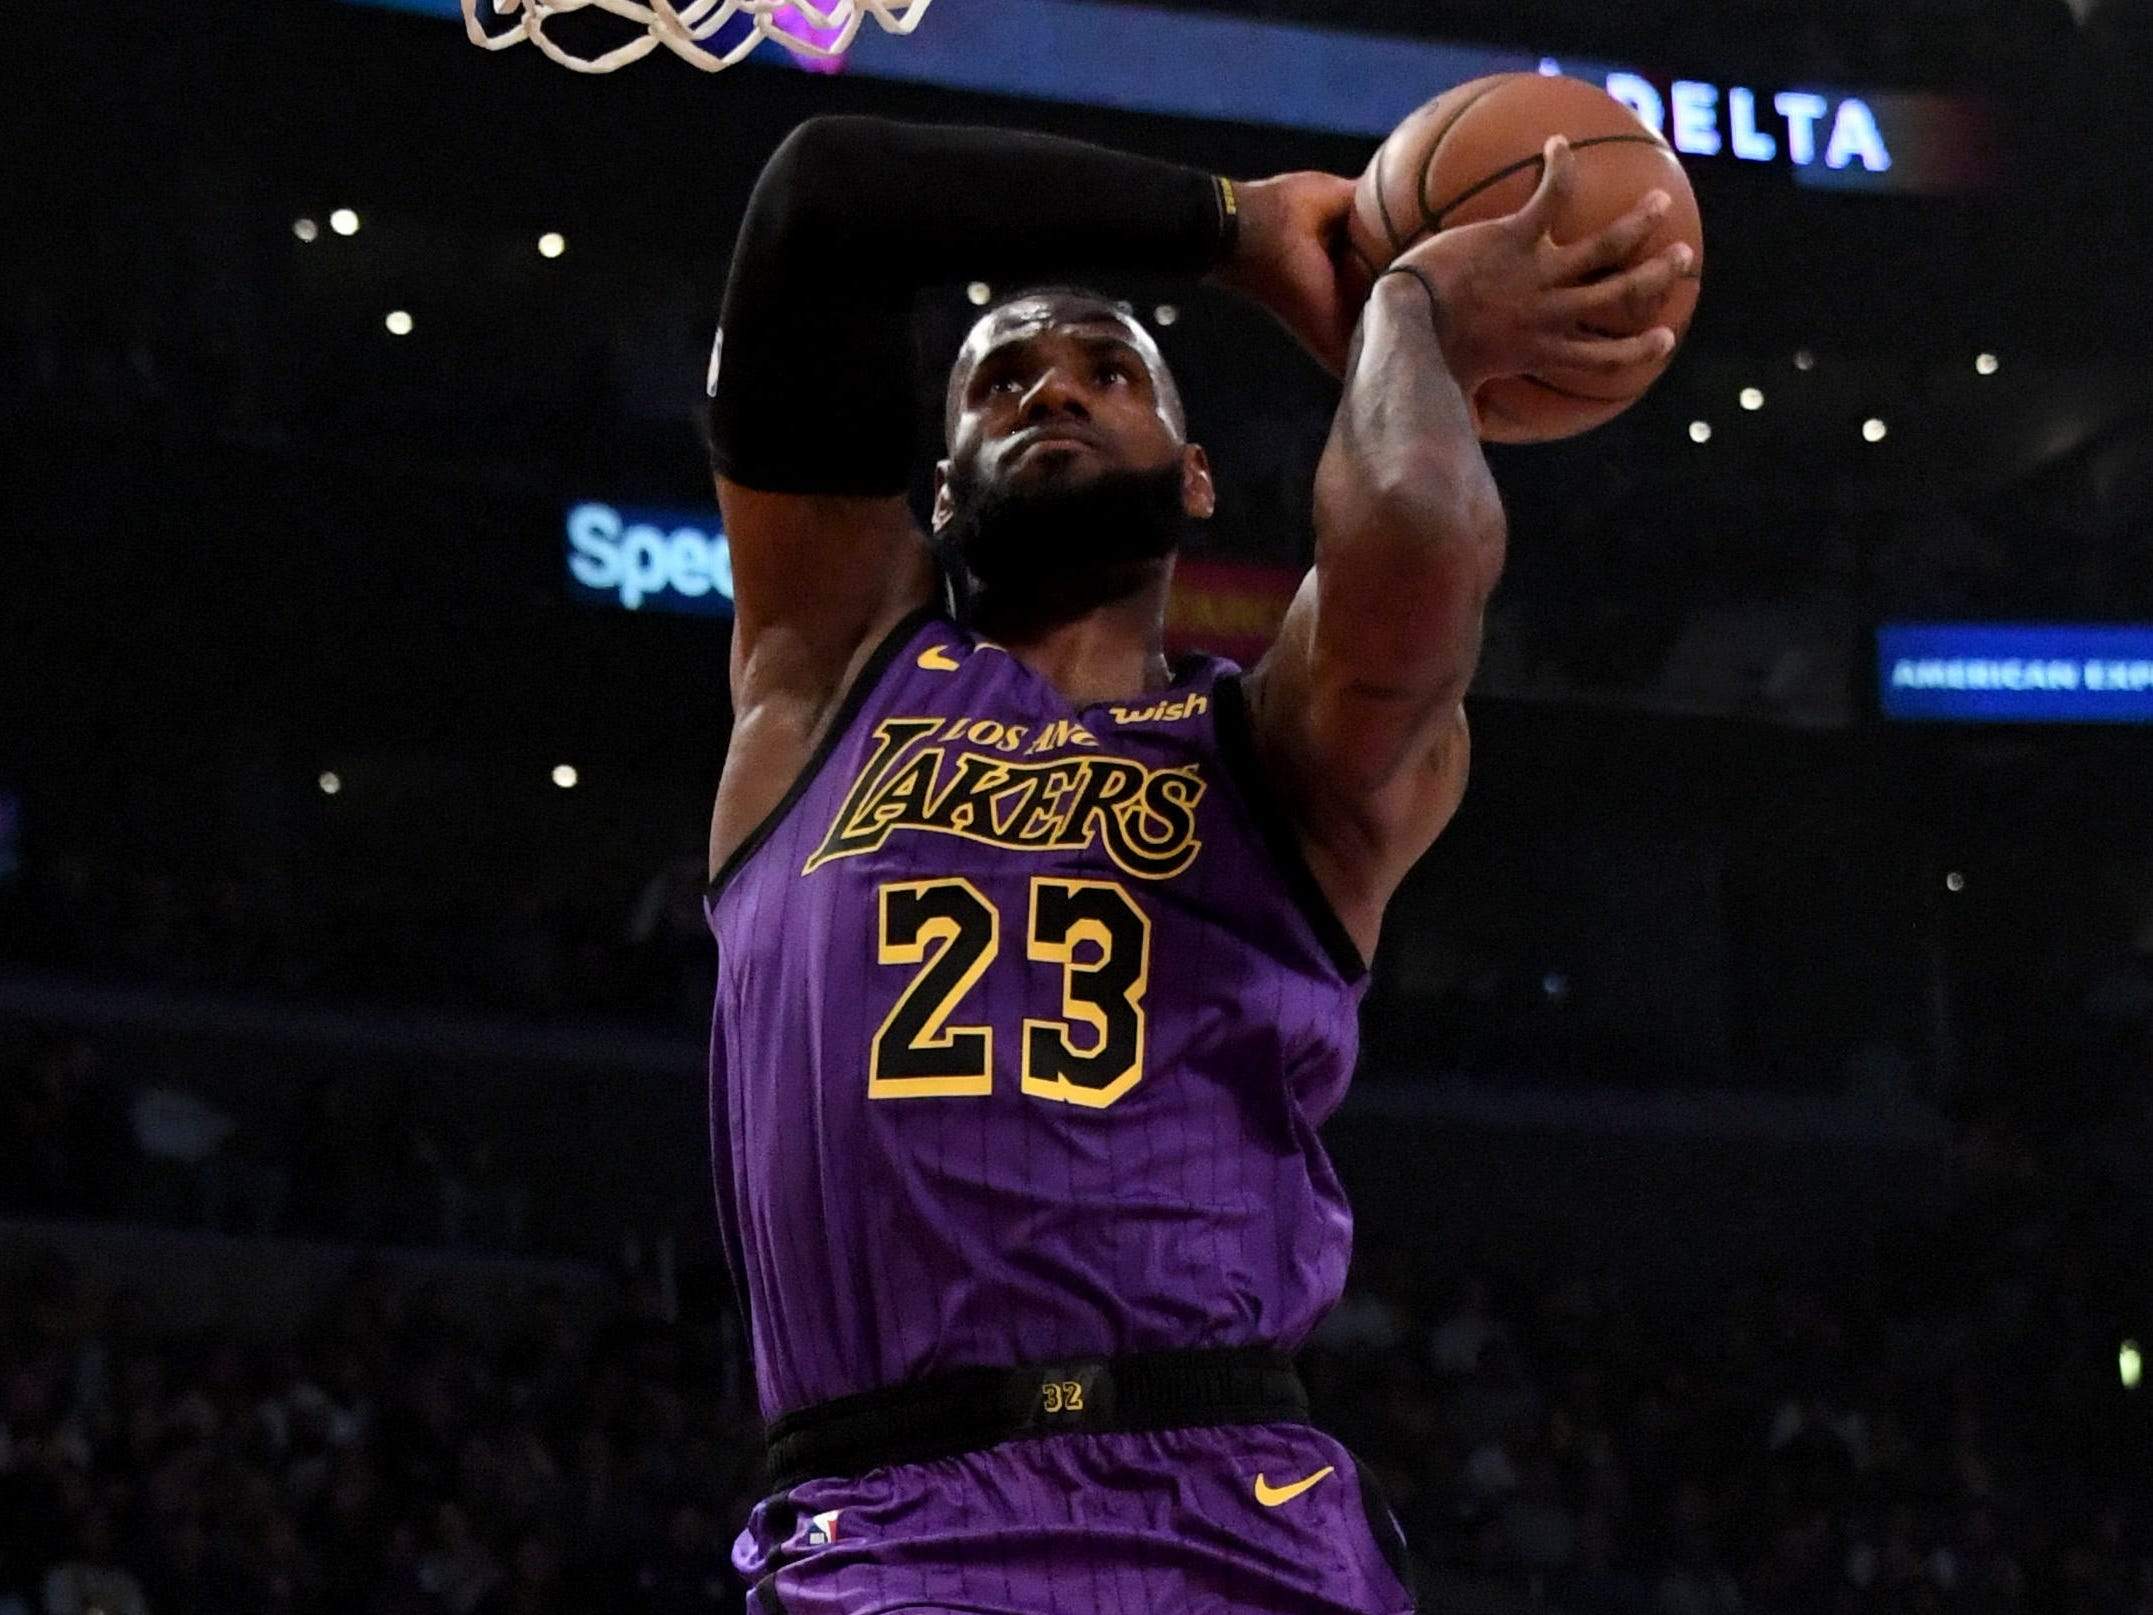 Nov. 14, 2018: James soars to the bucket and throws down a two-handed slam during the second half against the Blazers at Staples Center.